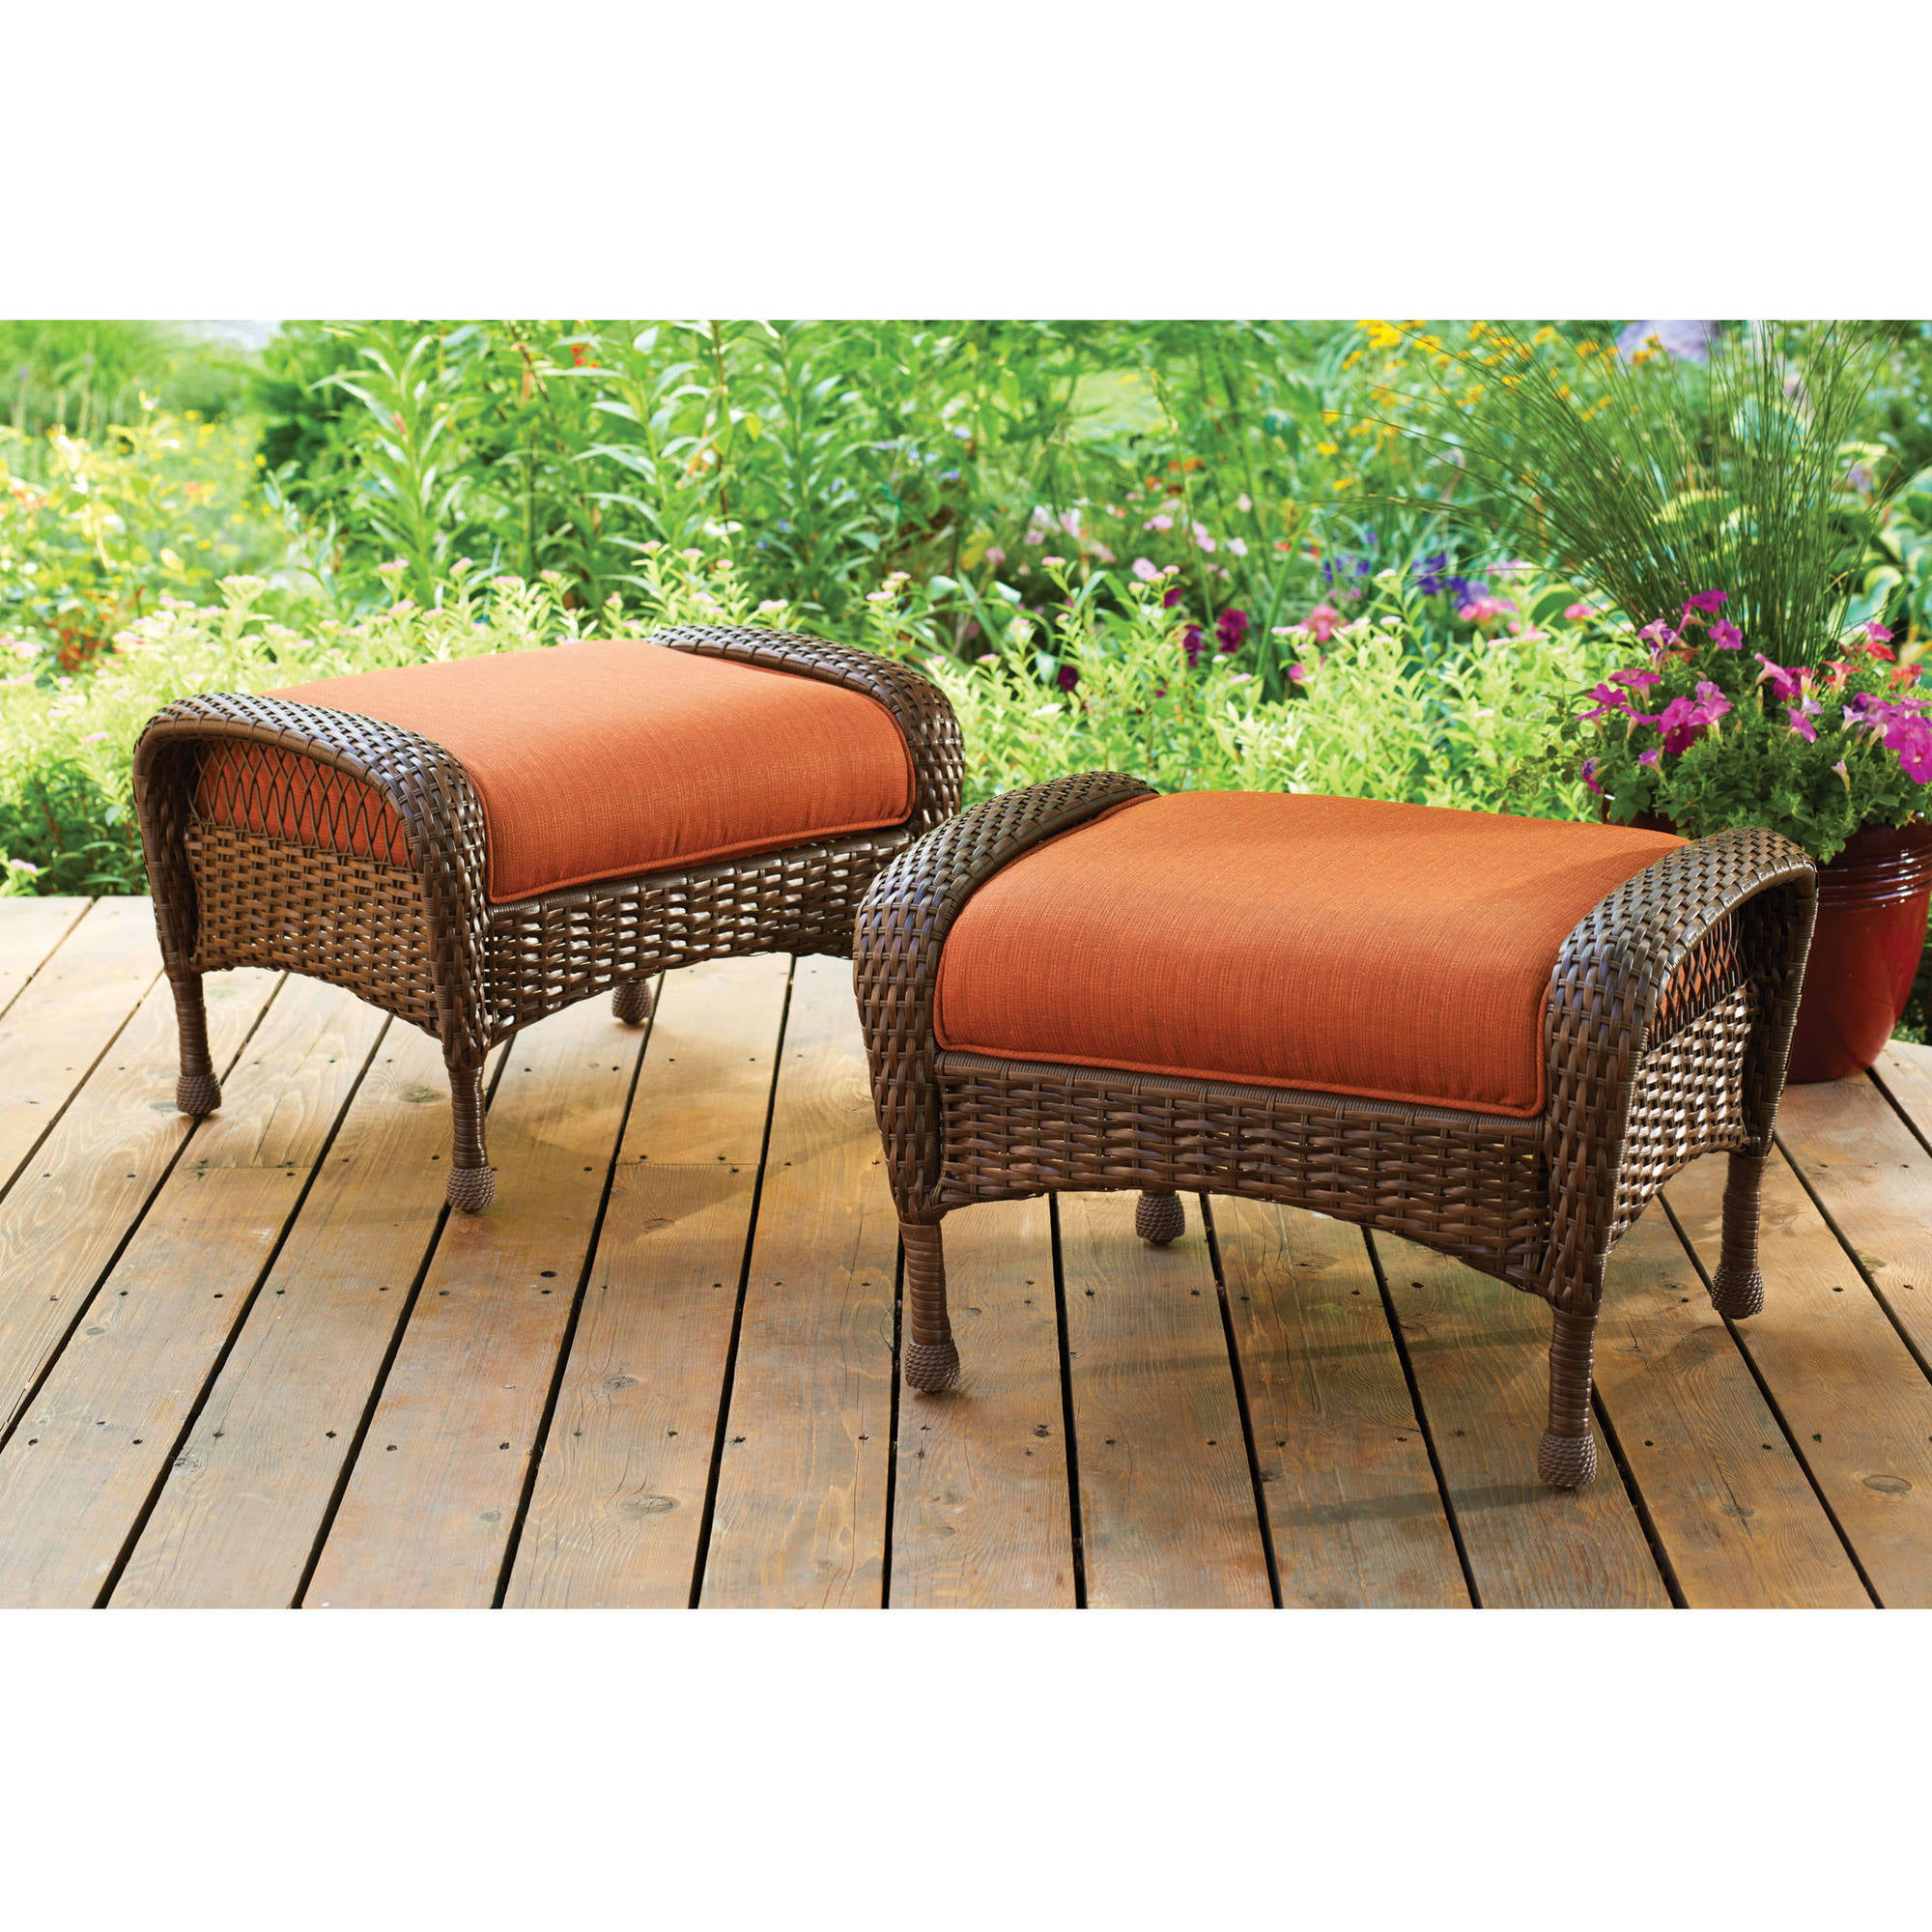 Patio Furniture Walmartcom - Outdoor patio furniture wicker